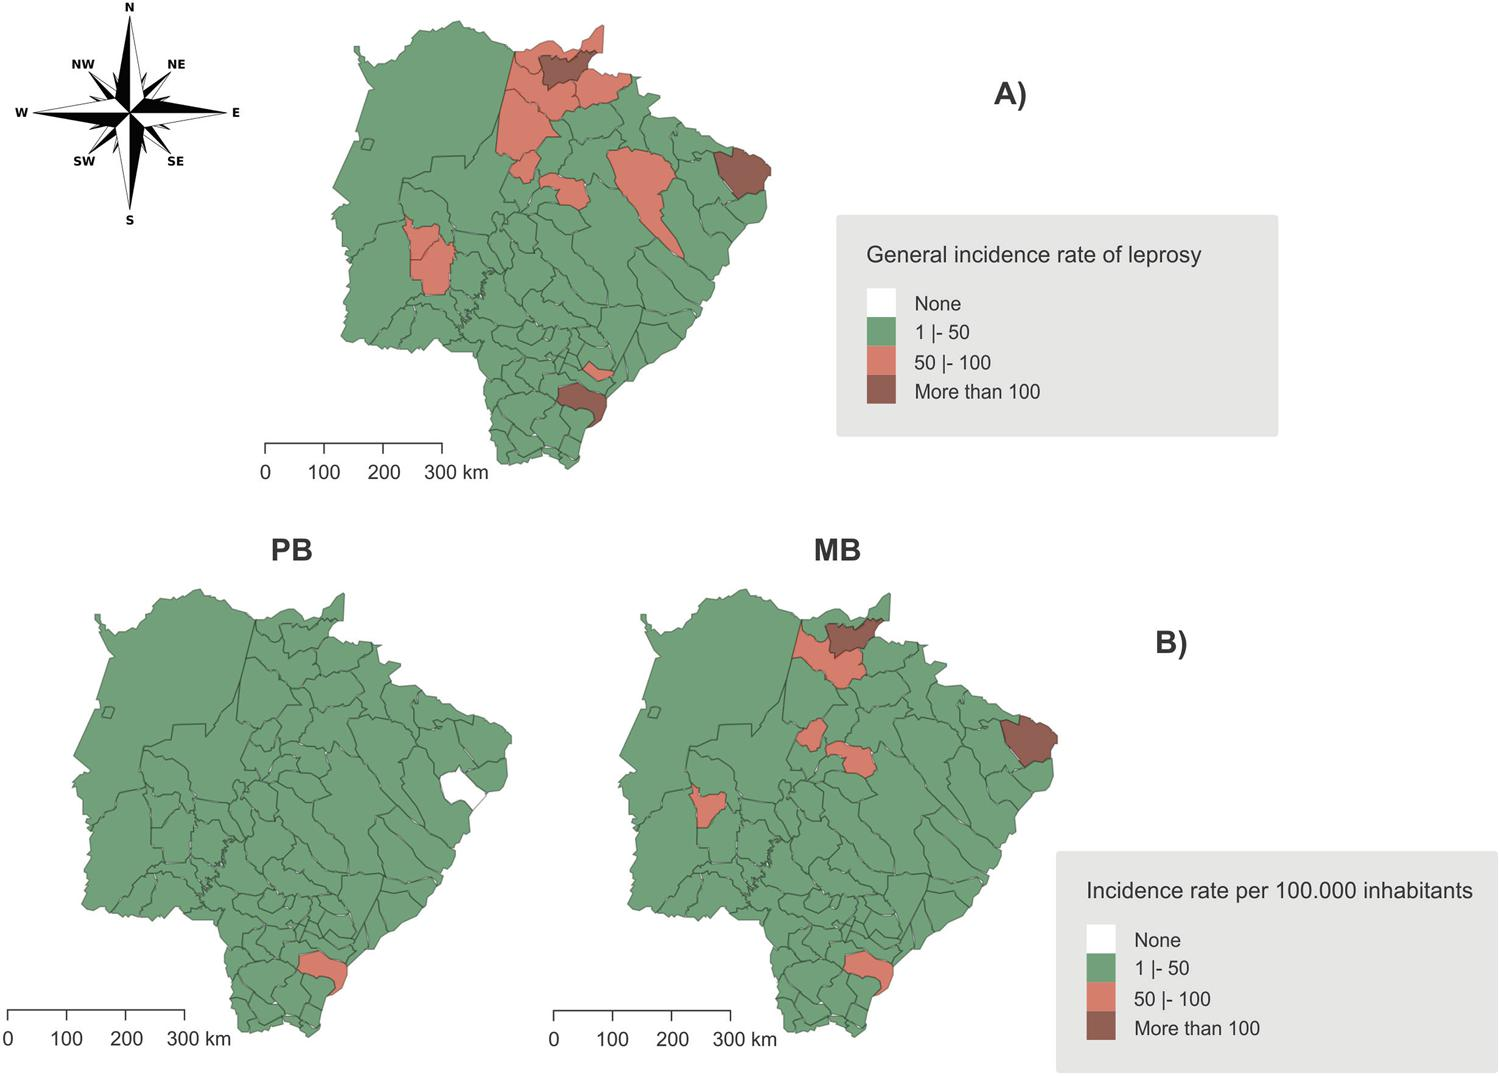 Spatial distribution of the incidence rate of leprosy in Mato Grosso do Sul State, Brazil, between 2001 and 2015. A) General incidence of leprosy. B) Paucibacillary and multibacillary leprosy incidence. PB: paucibacillary leprosy; MB: multibacillary leprosy.